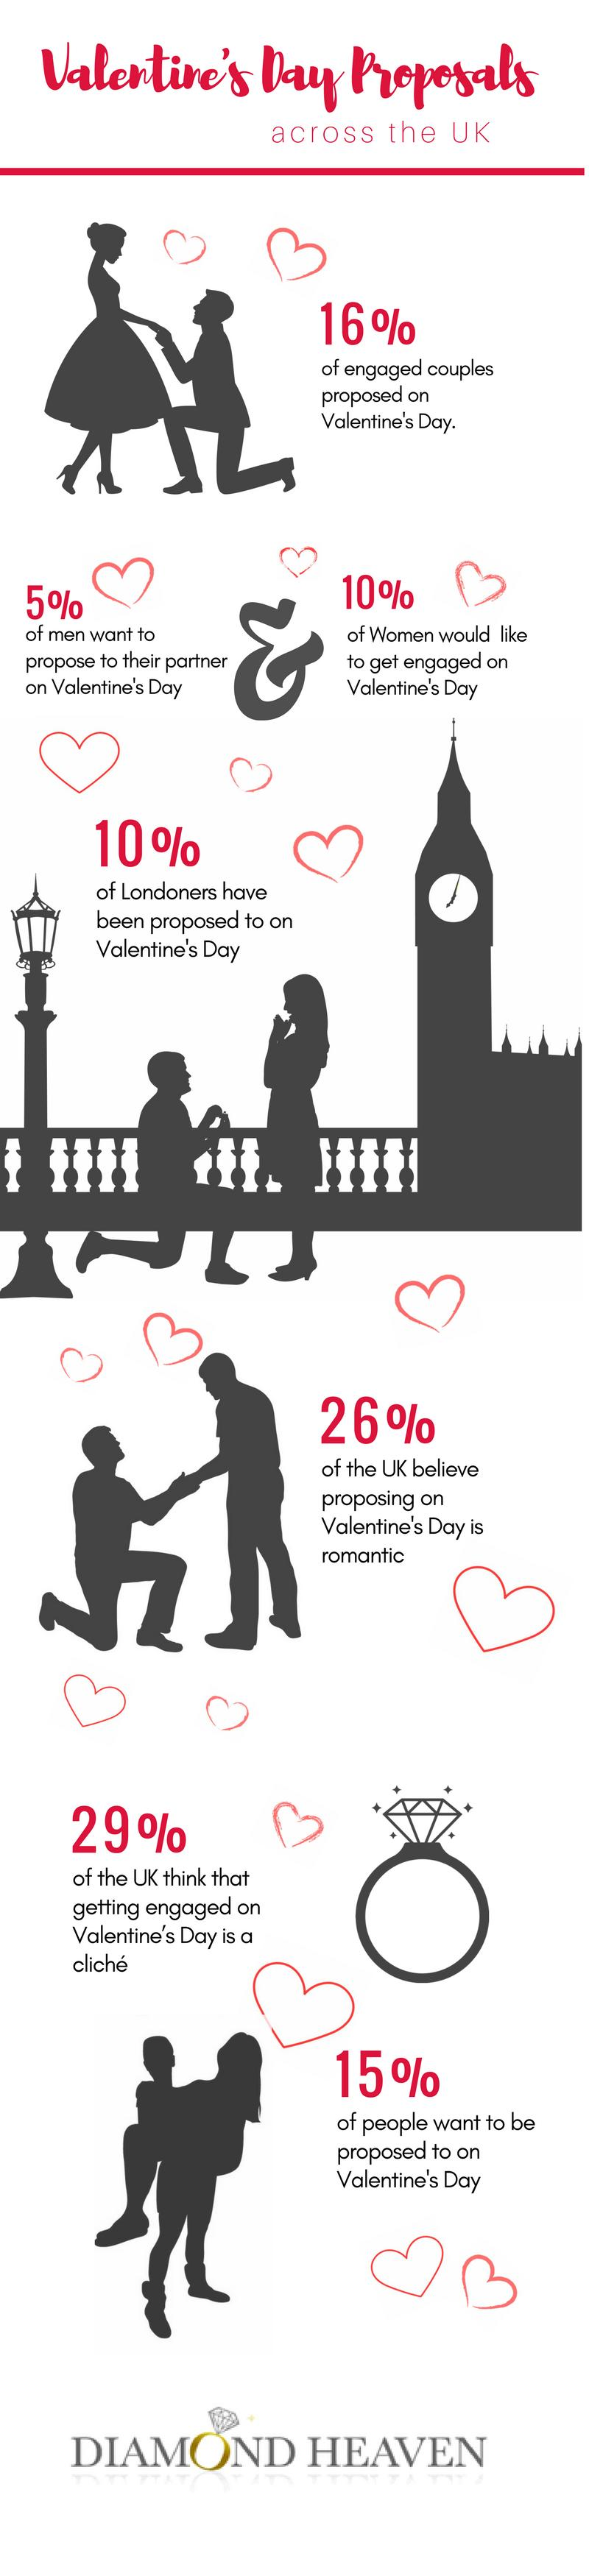 one-million-men-could-be-proposing-this-valentines-day-2